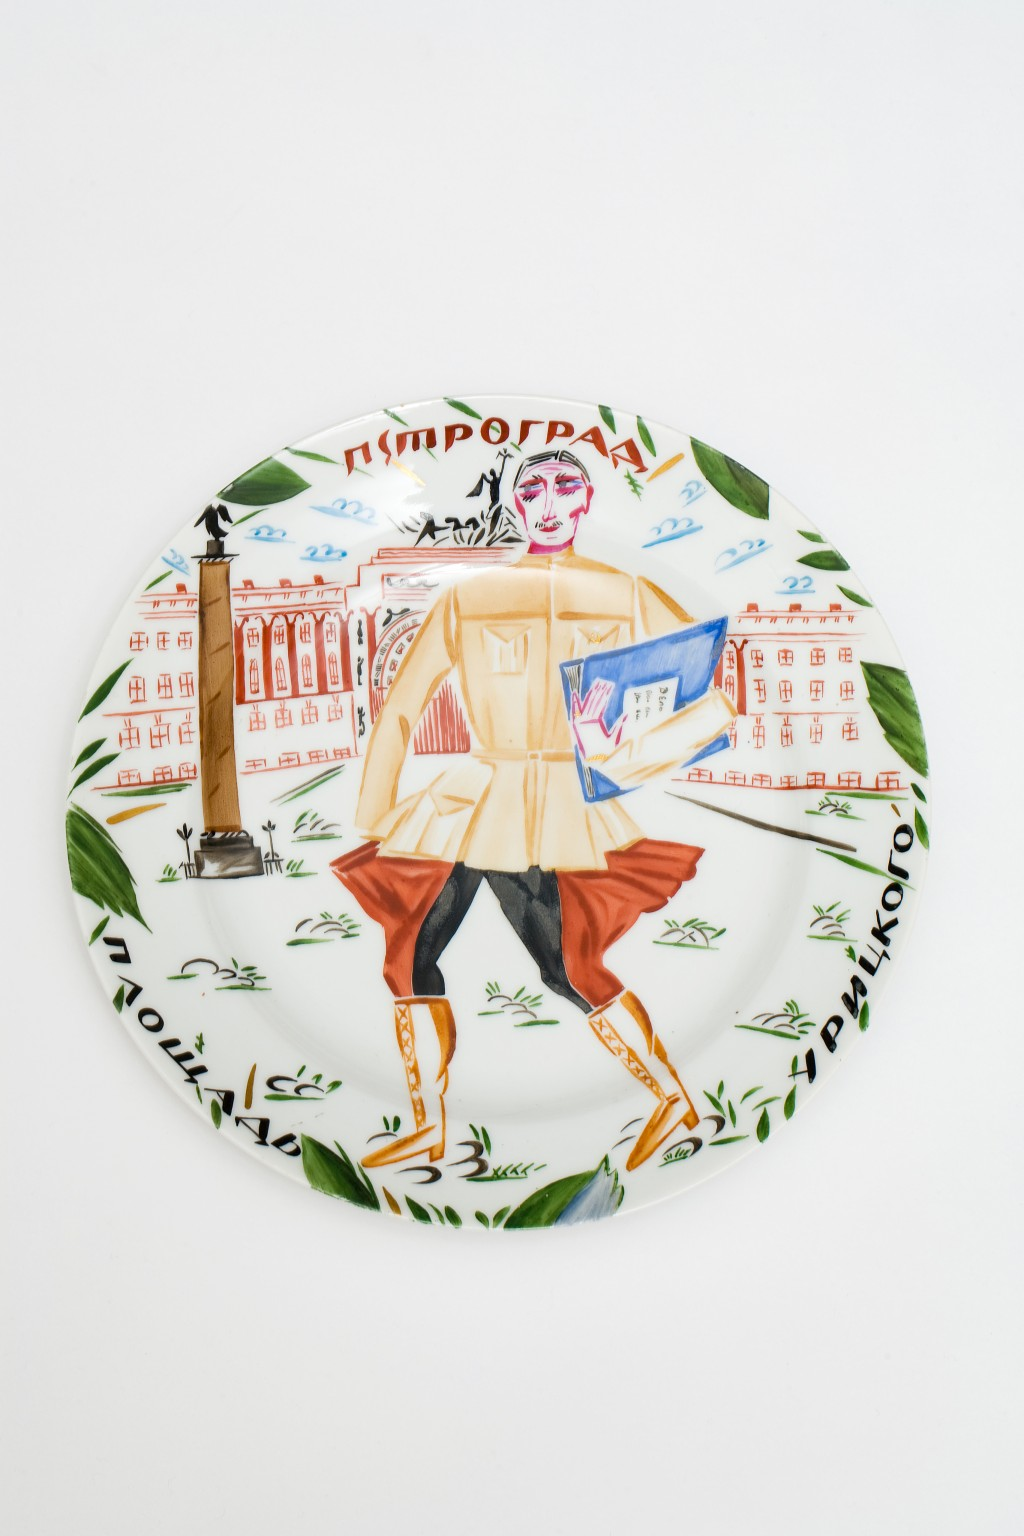 Russian Porcelain Plate of 1922, part of the Russian Collection at Dorich House, Kingston.